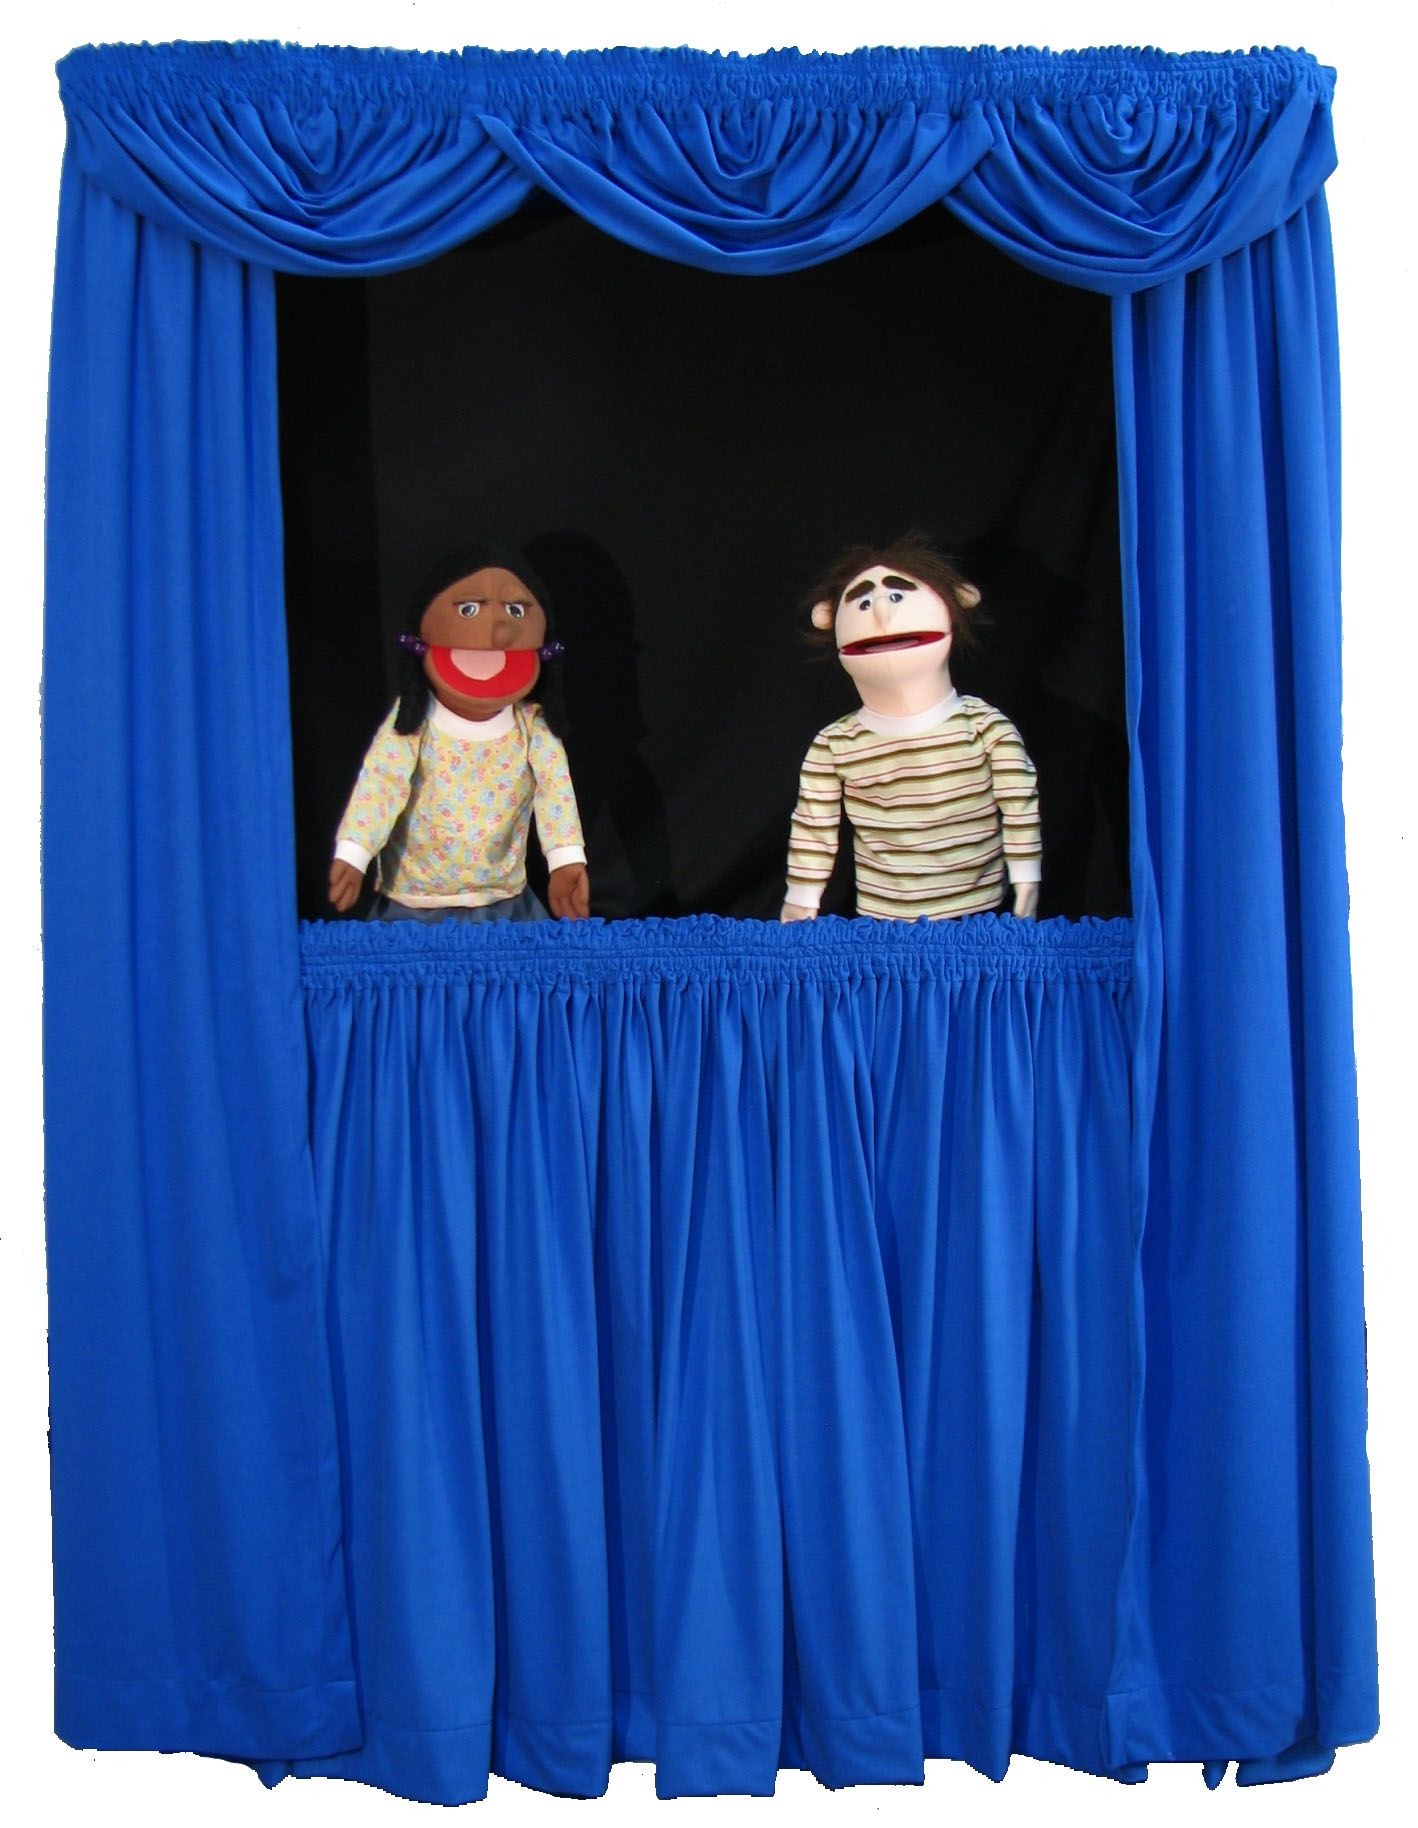 Image result for puppets on stage